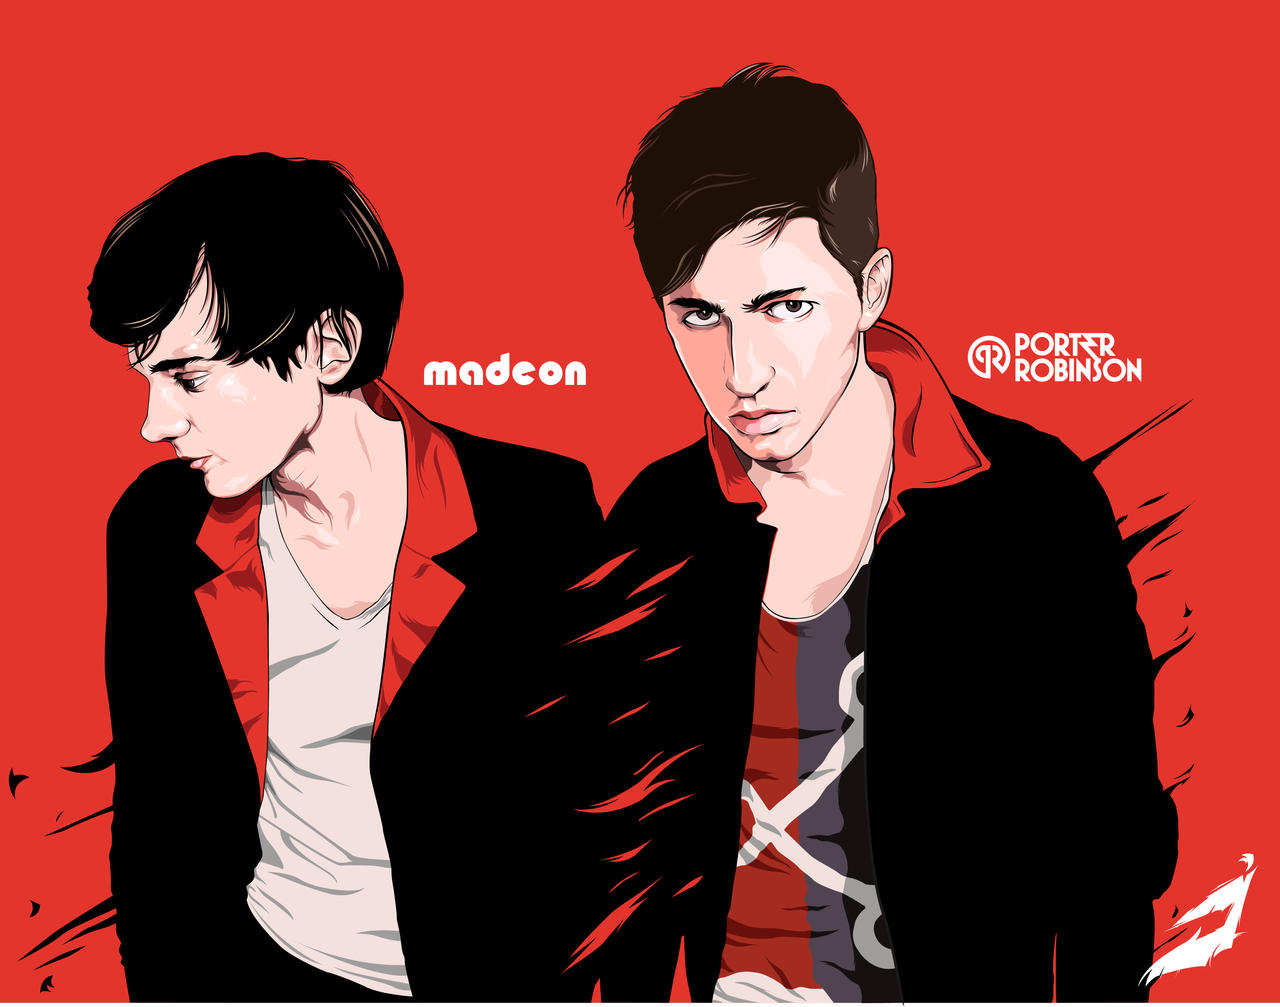 Porter robinson and madeon vector art by mhirraw on deviantart for Madeon y porter robinson